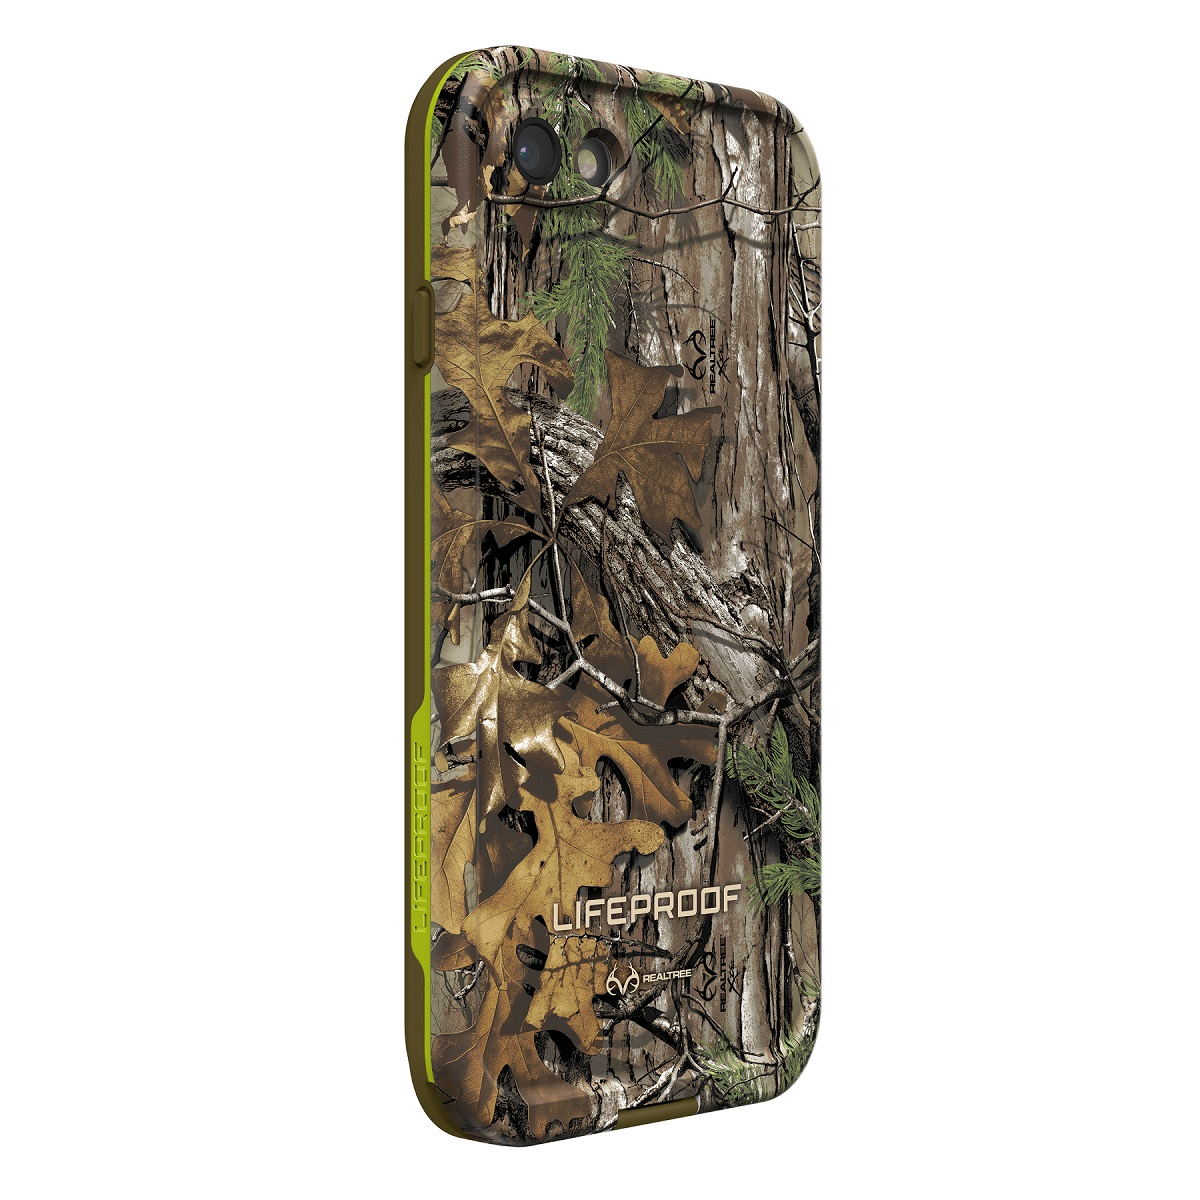 lowest price 091d6 49aff LifeProof FRĒ Case for iPhone 7 in Realtree Camo